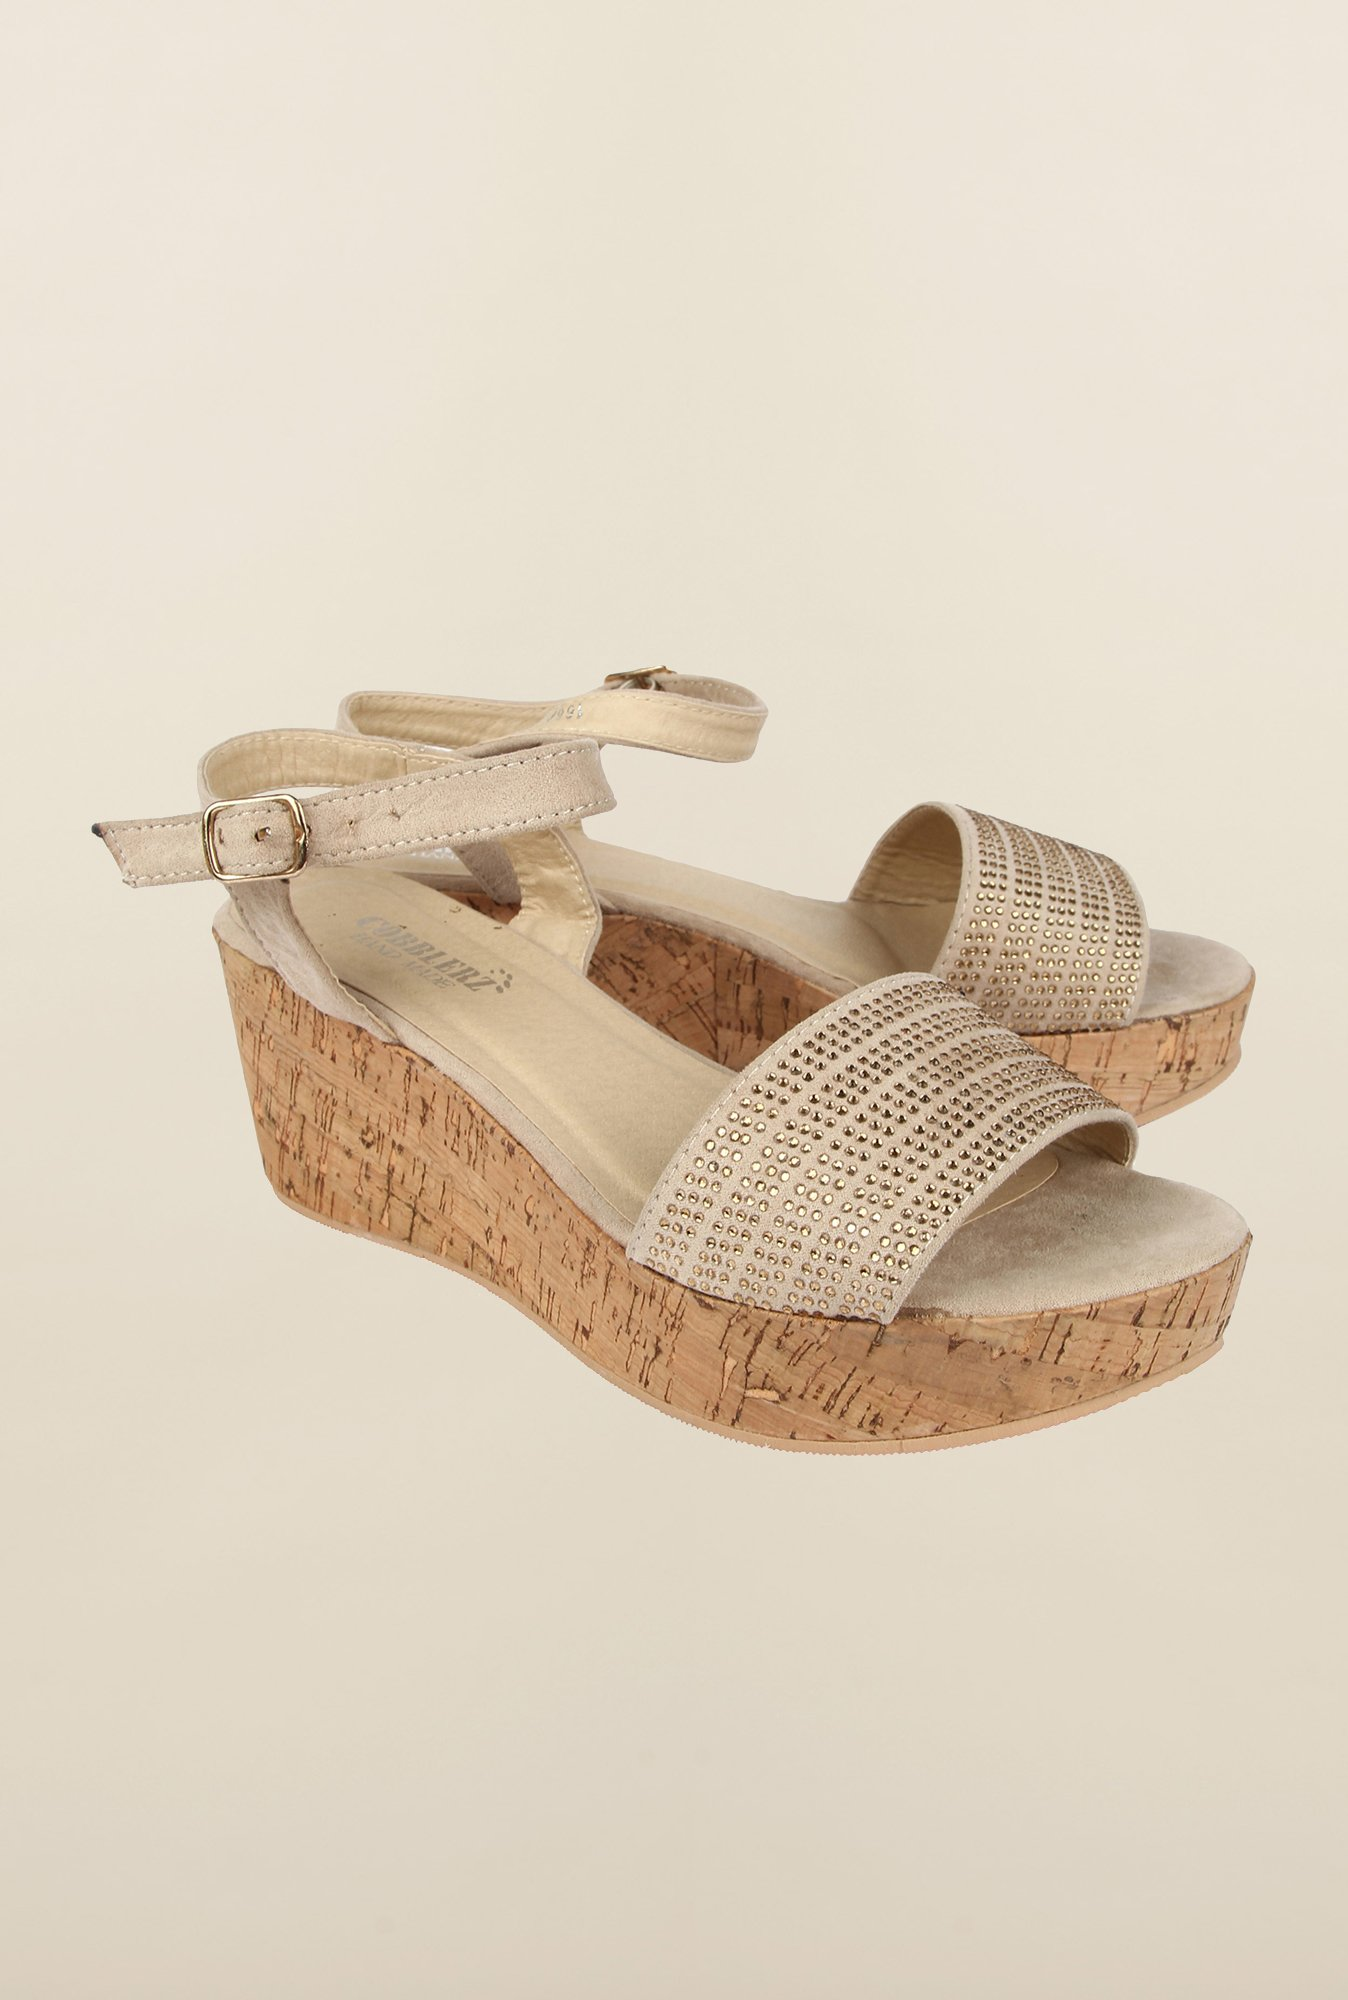 Cobblerz Beige Wedge Sandals